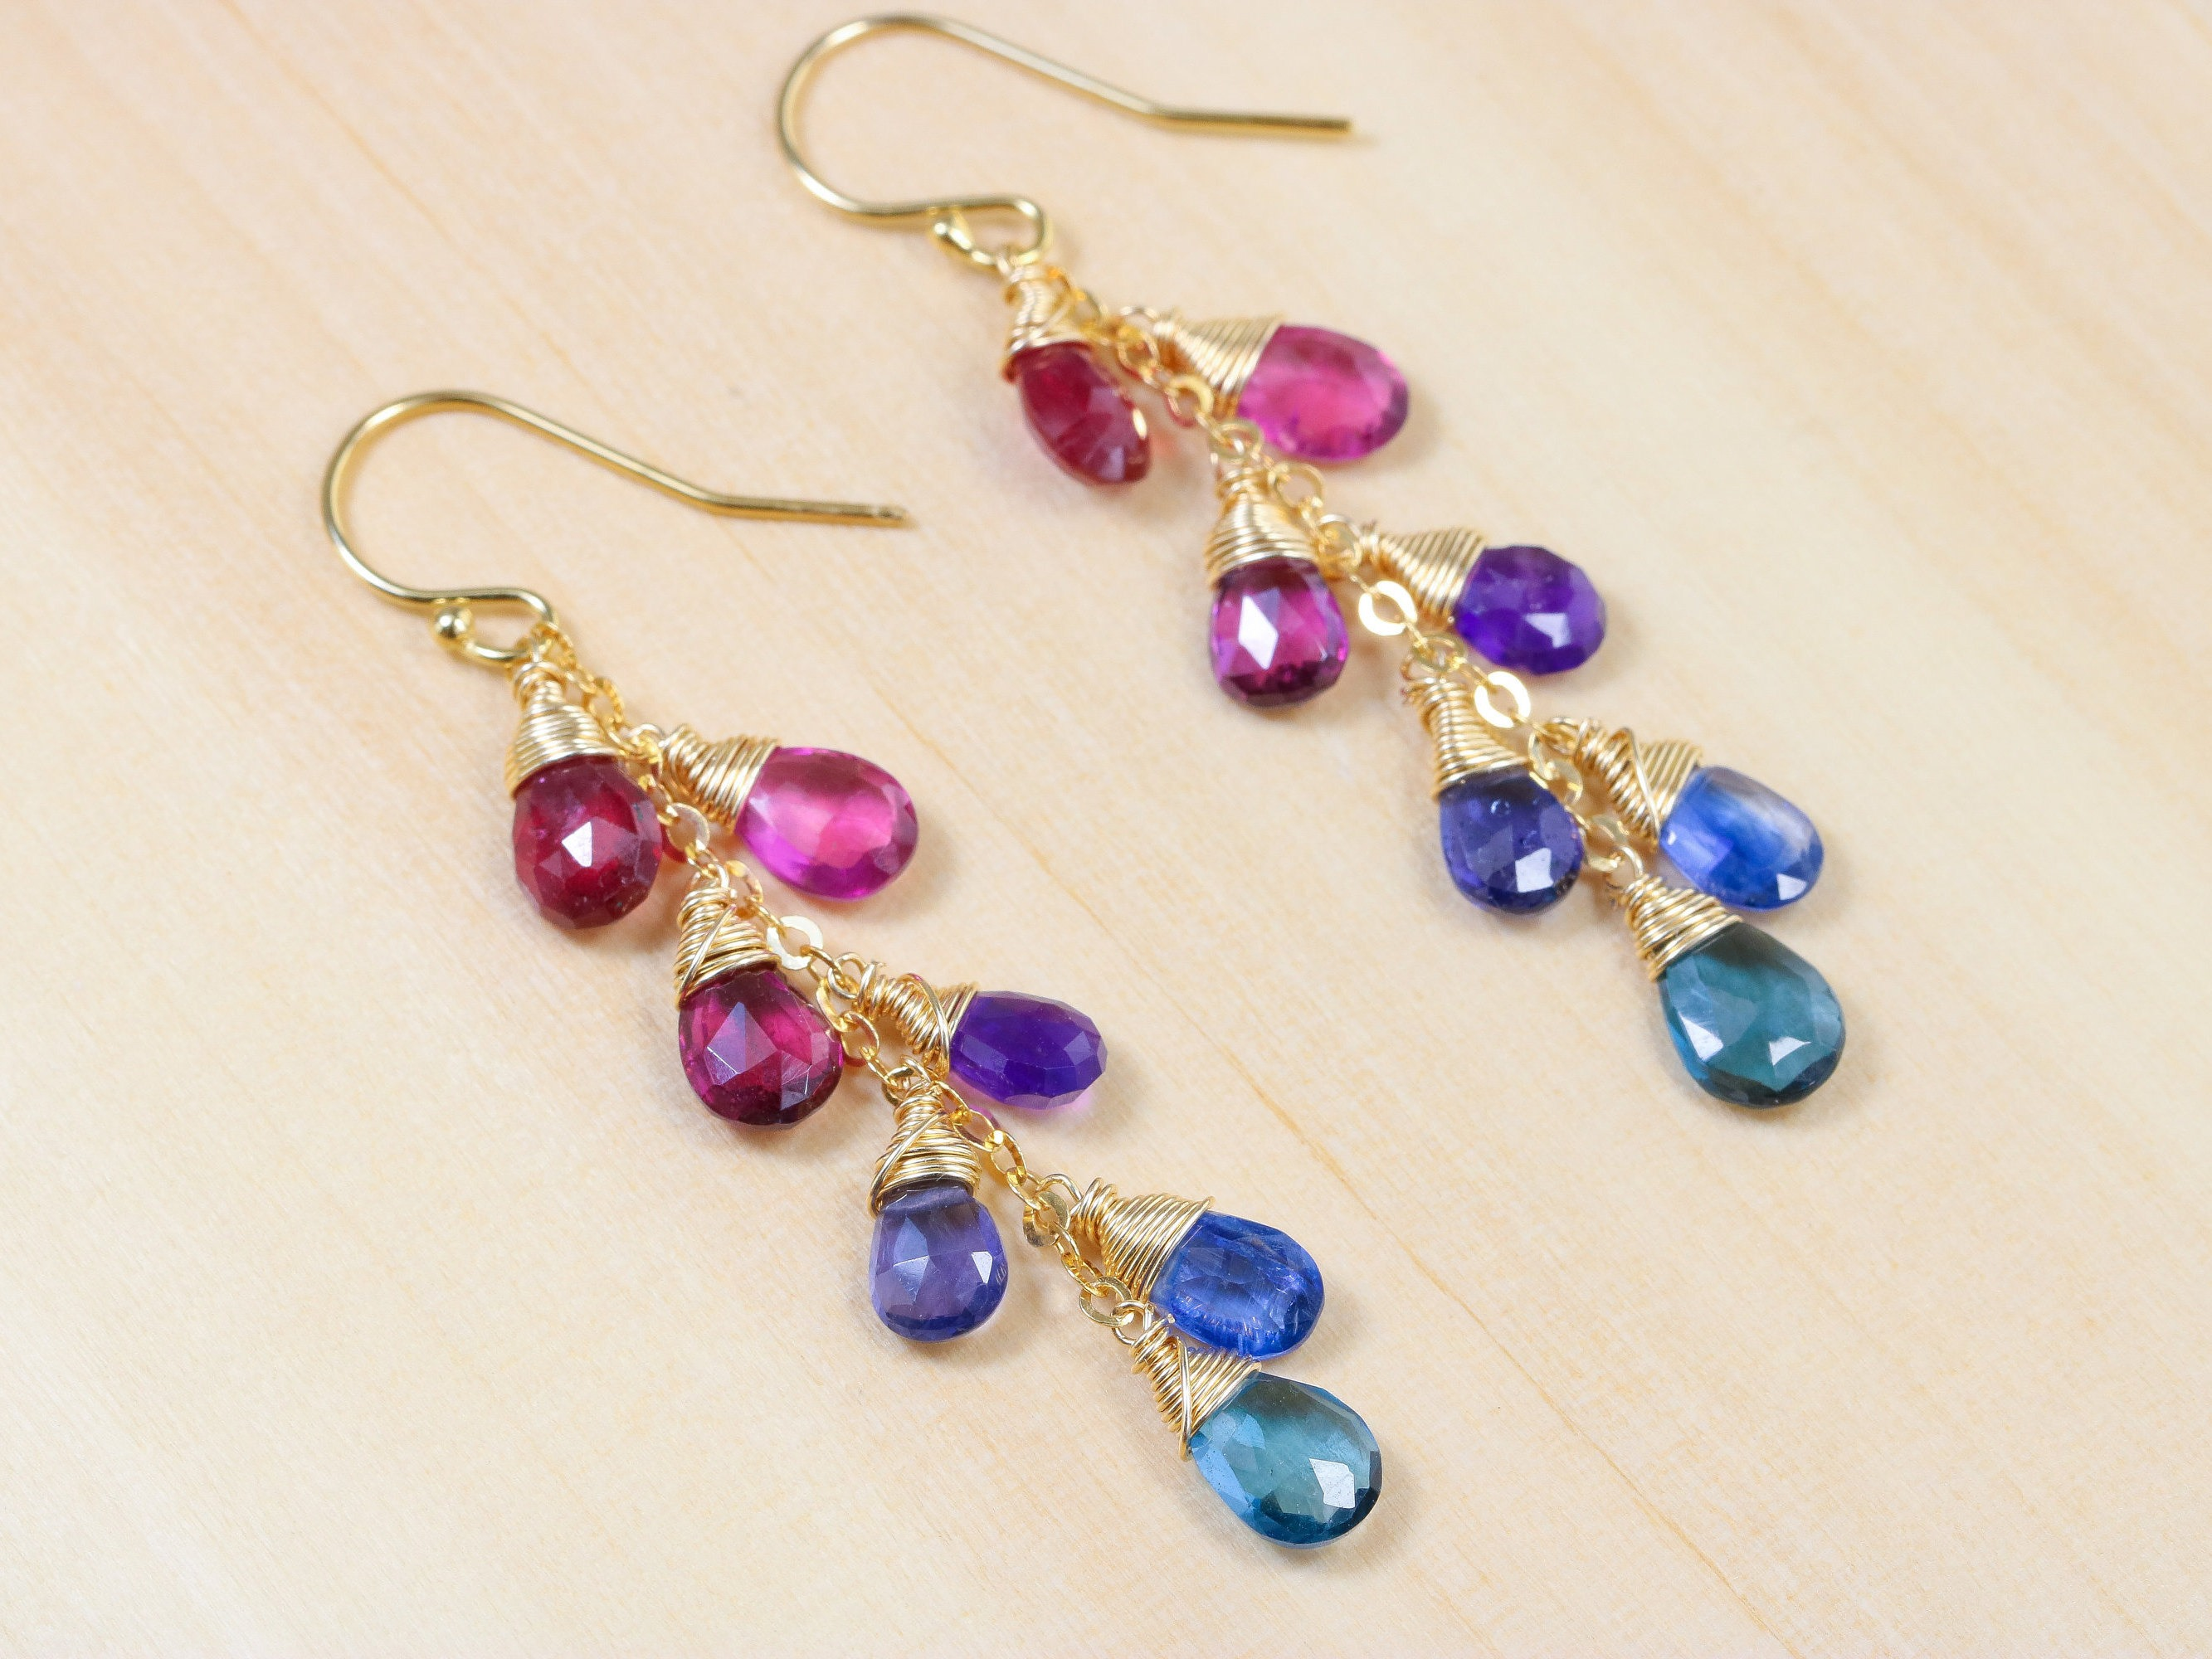 ke rainbow products bella earrings moonstone img